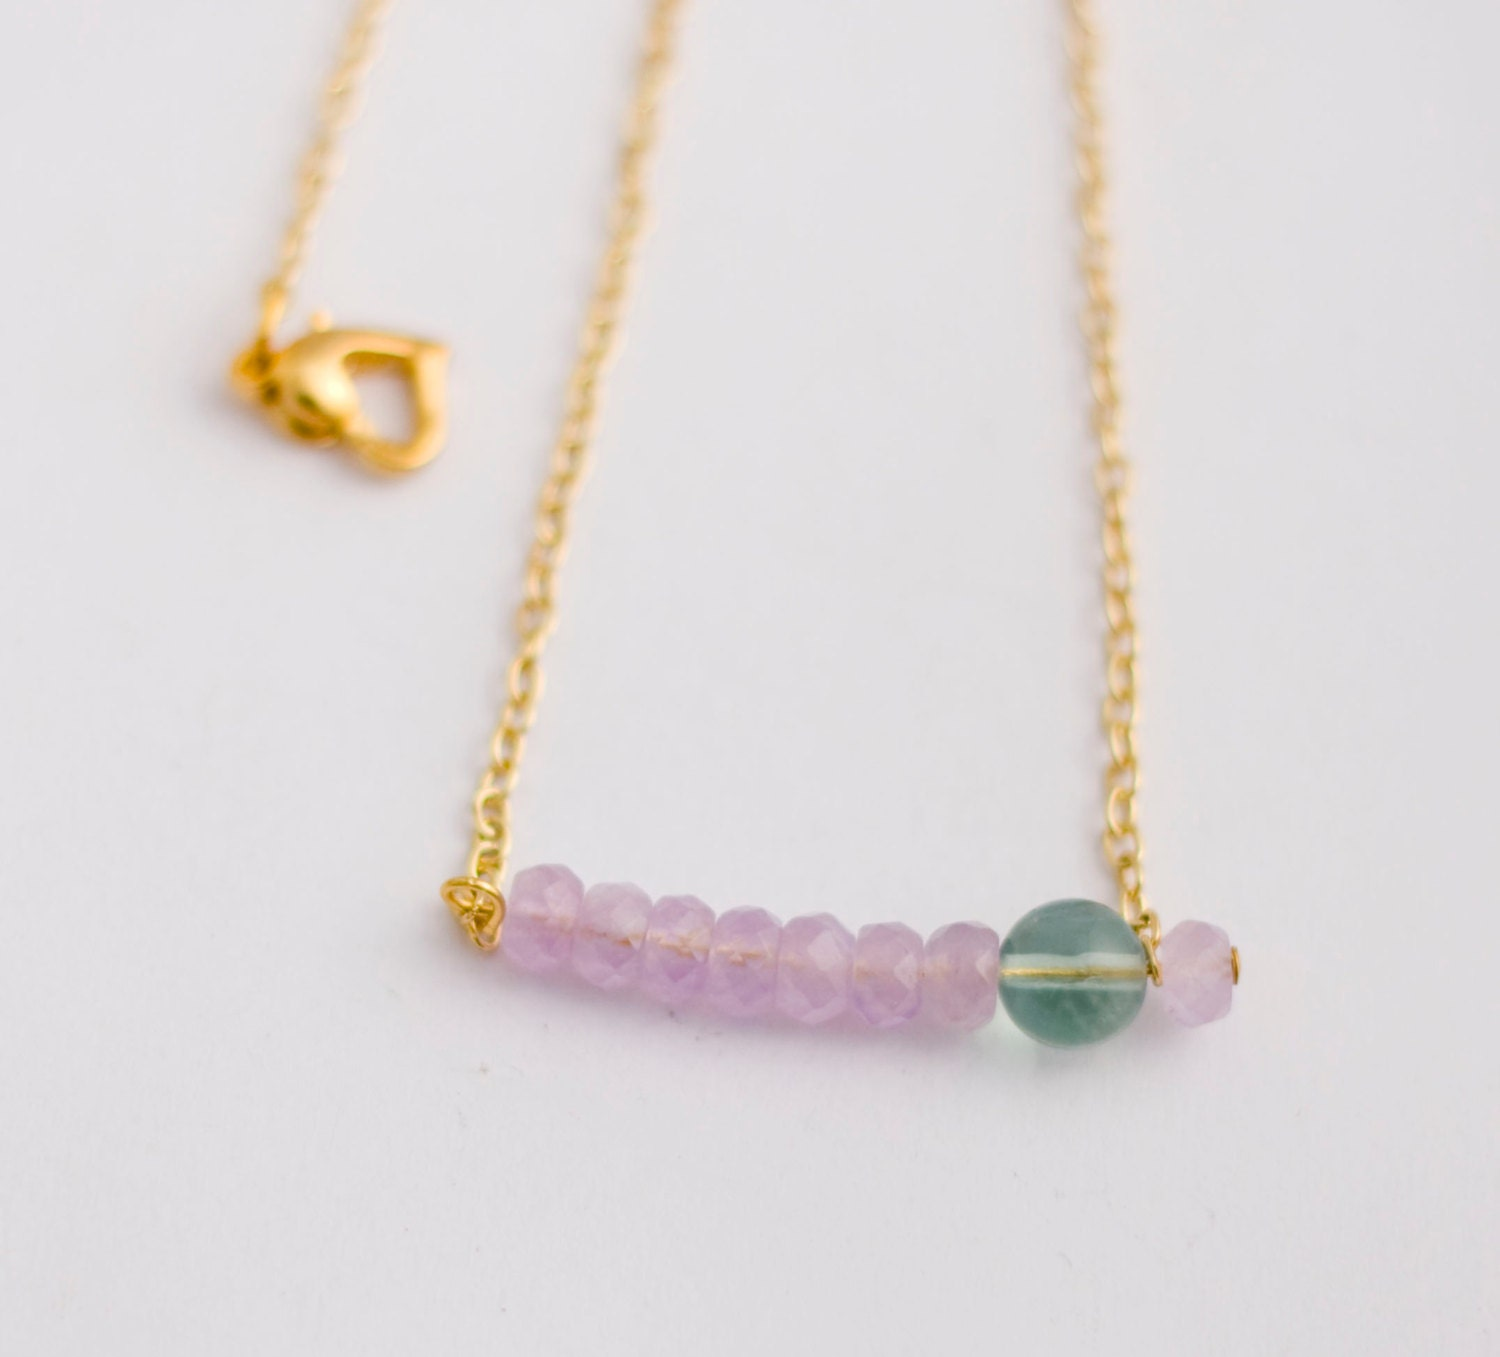 Gold Tone Thin Chain Choker Necklace With Lilac Amethyst. Jellyfish Pendant. 14k Solid Gold Pendant. Hummingbird Pendant. Hand Crafted Wedding Rings. Concrete Earrings. Indian Gold Jewellery. Platinum Anklet. Mineral Platinum